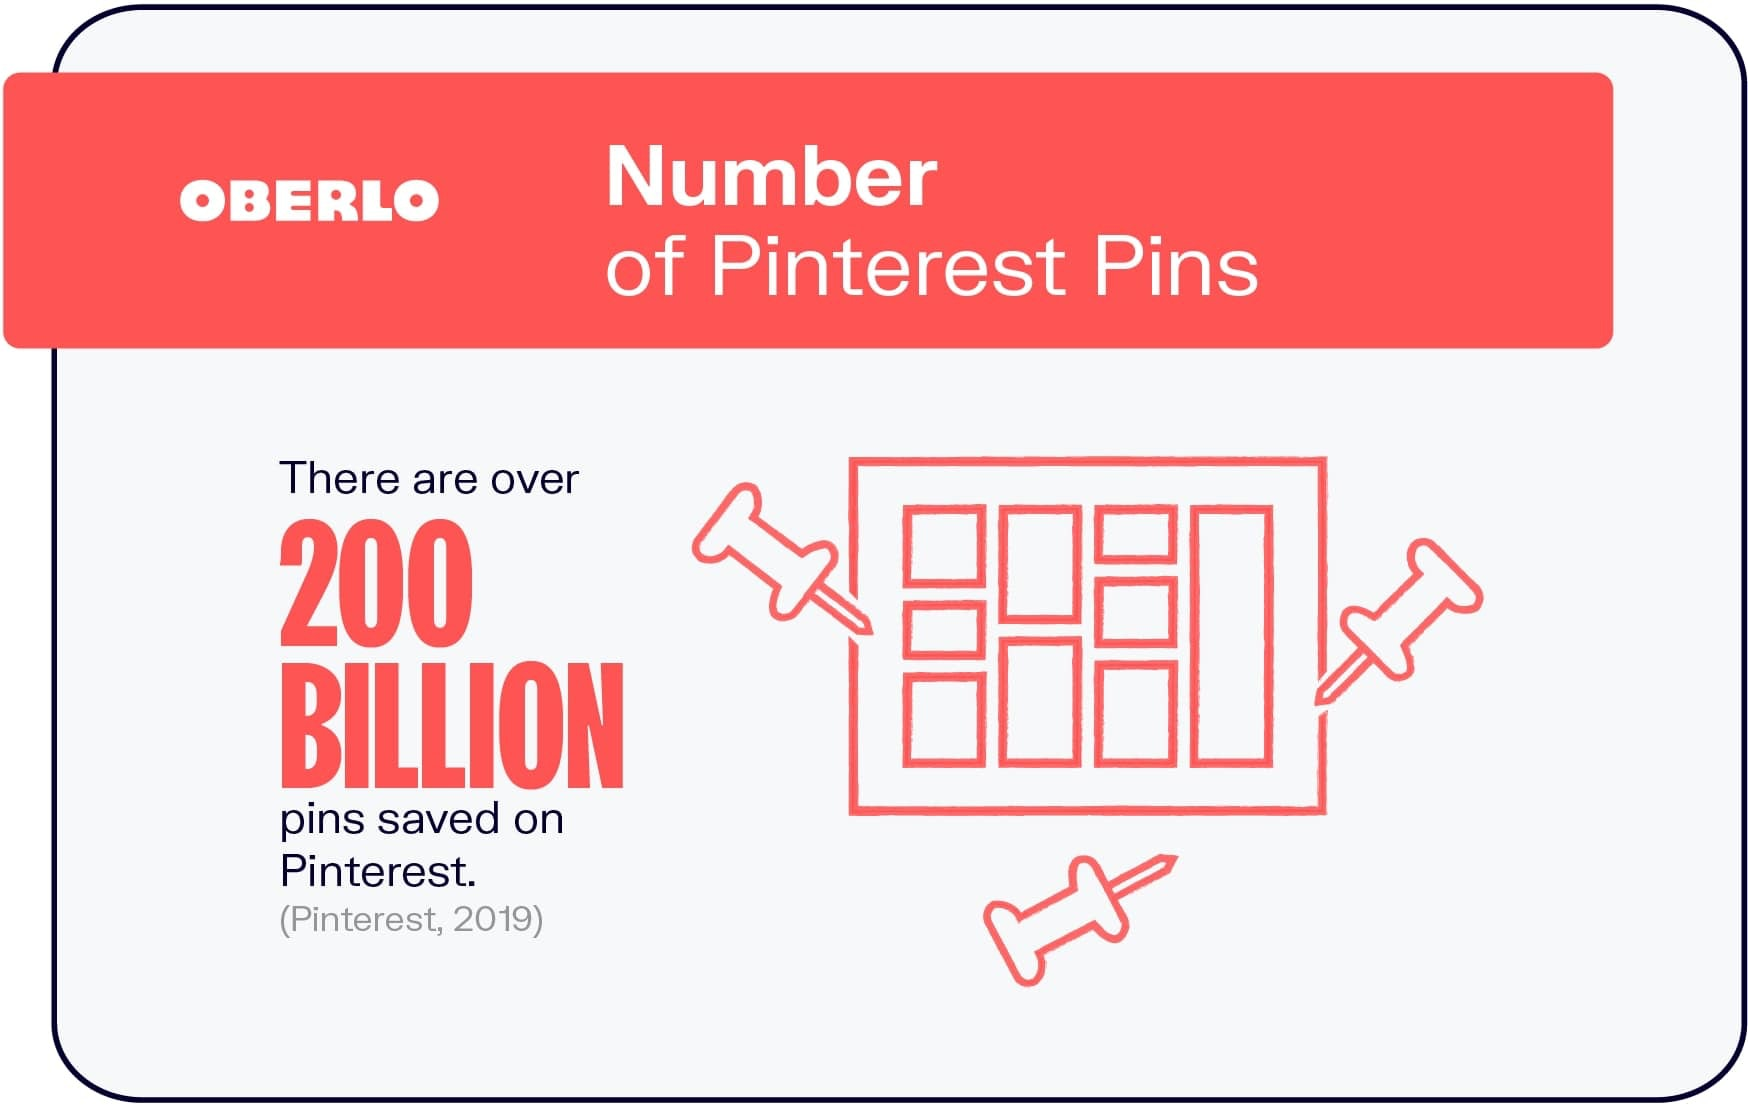 Number of Pinterest Pins